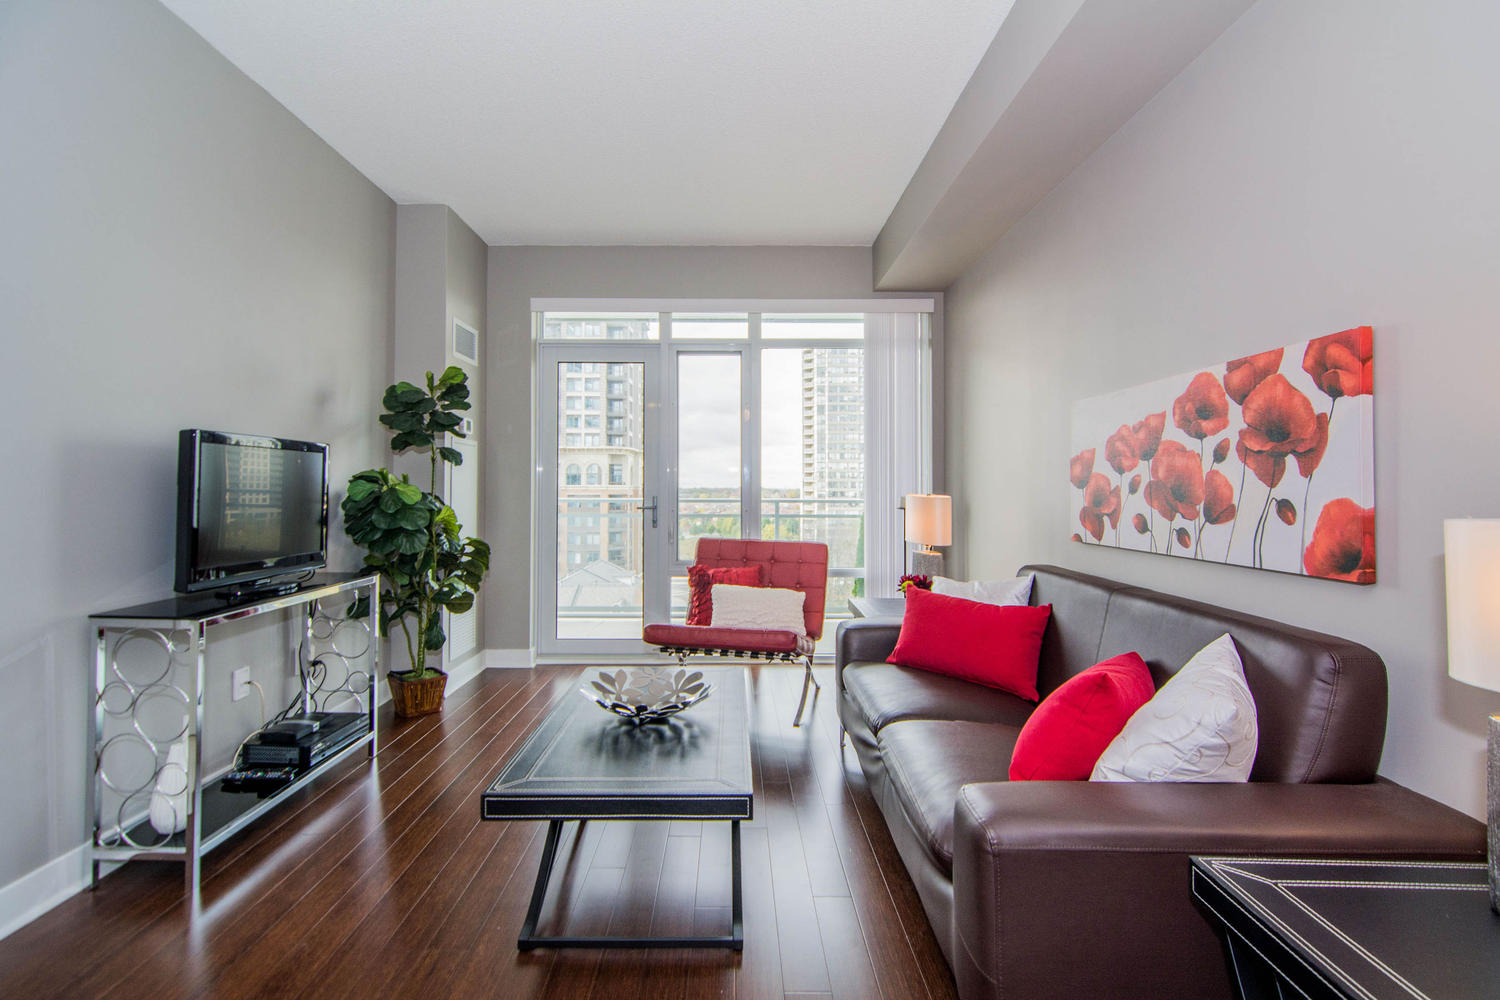 Furniture Rental Good Investment Or Ridiculous Cost The